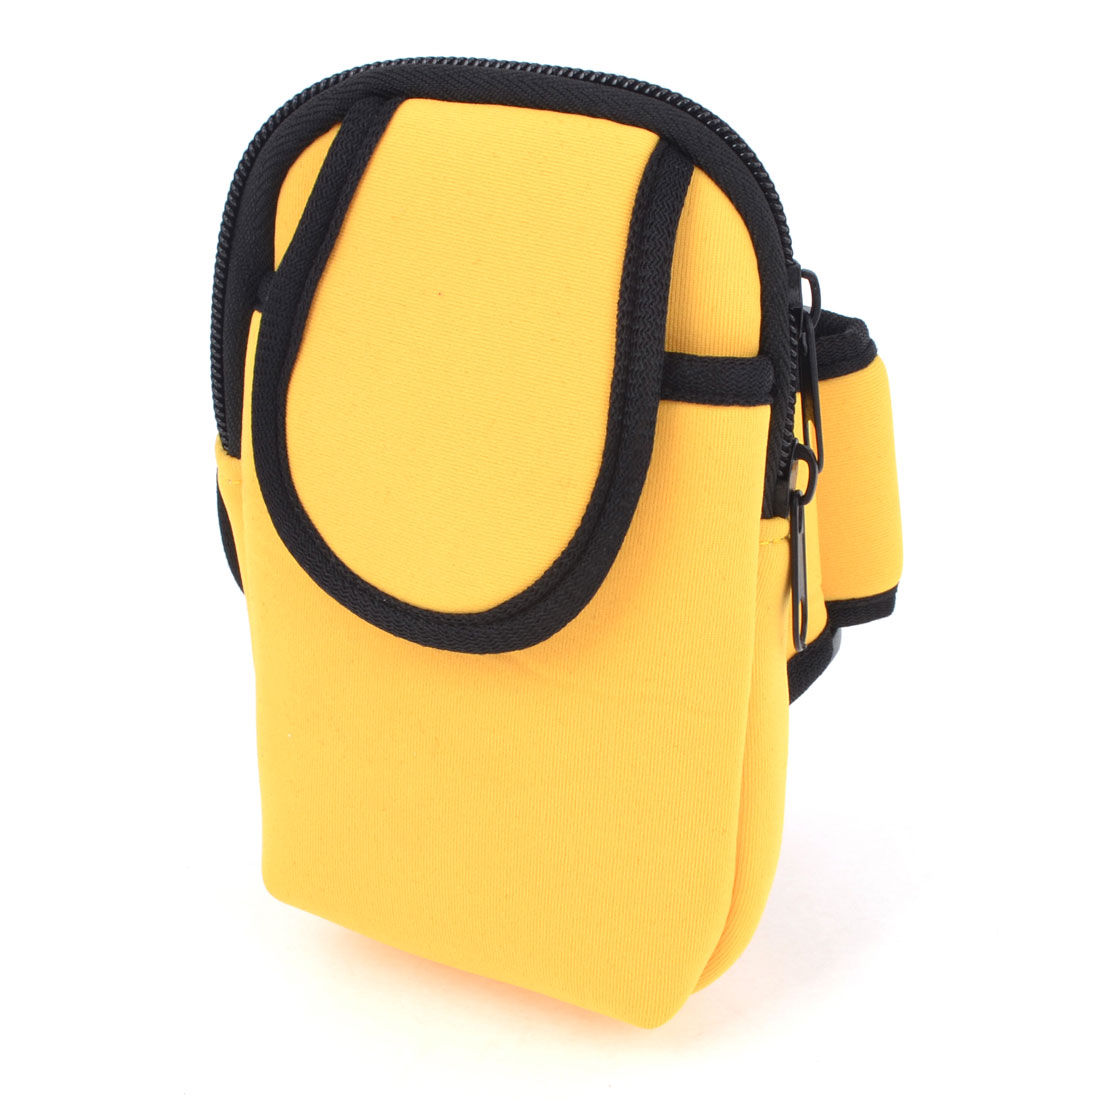 Unisex Black Yellow Hook Loop Fastener Phone Mp3 Mp4 Holder Arm Bag